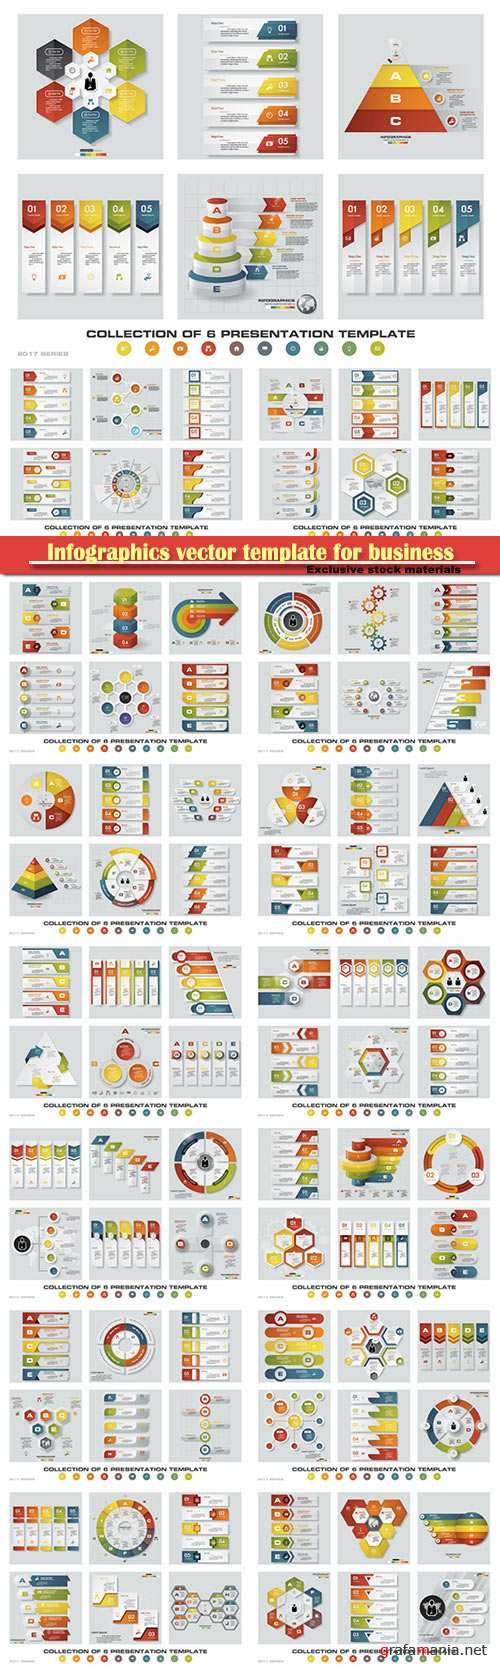 Infographics vector template for business presentations or information banner # 29